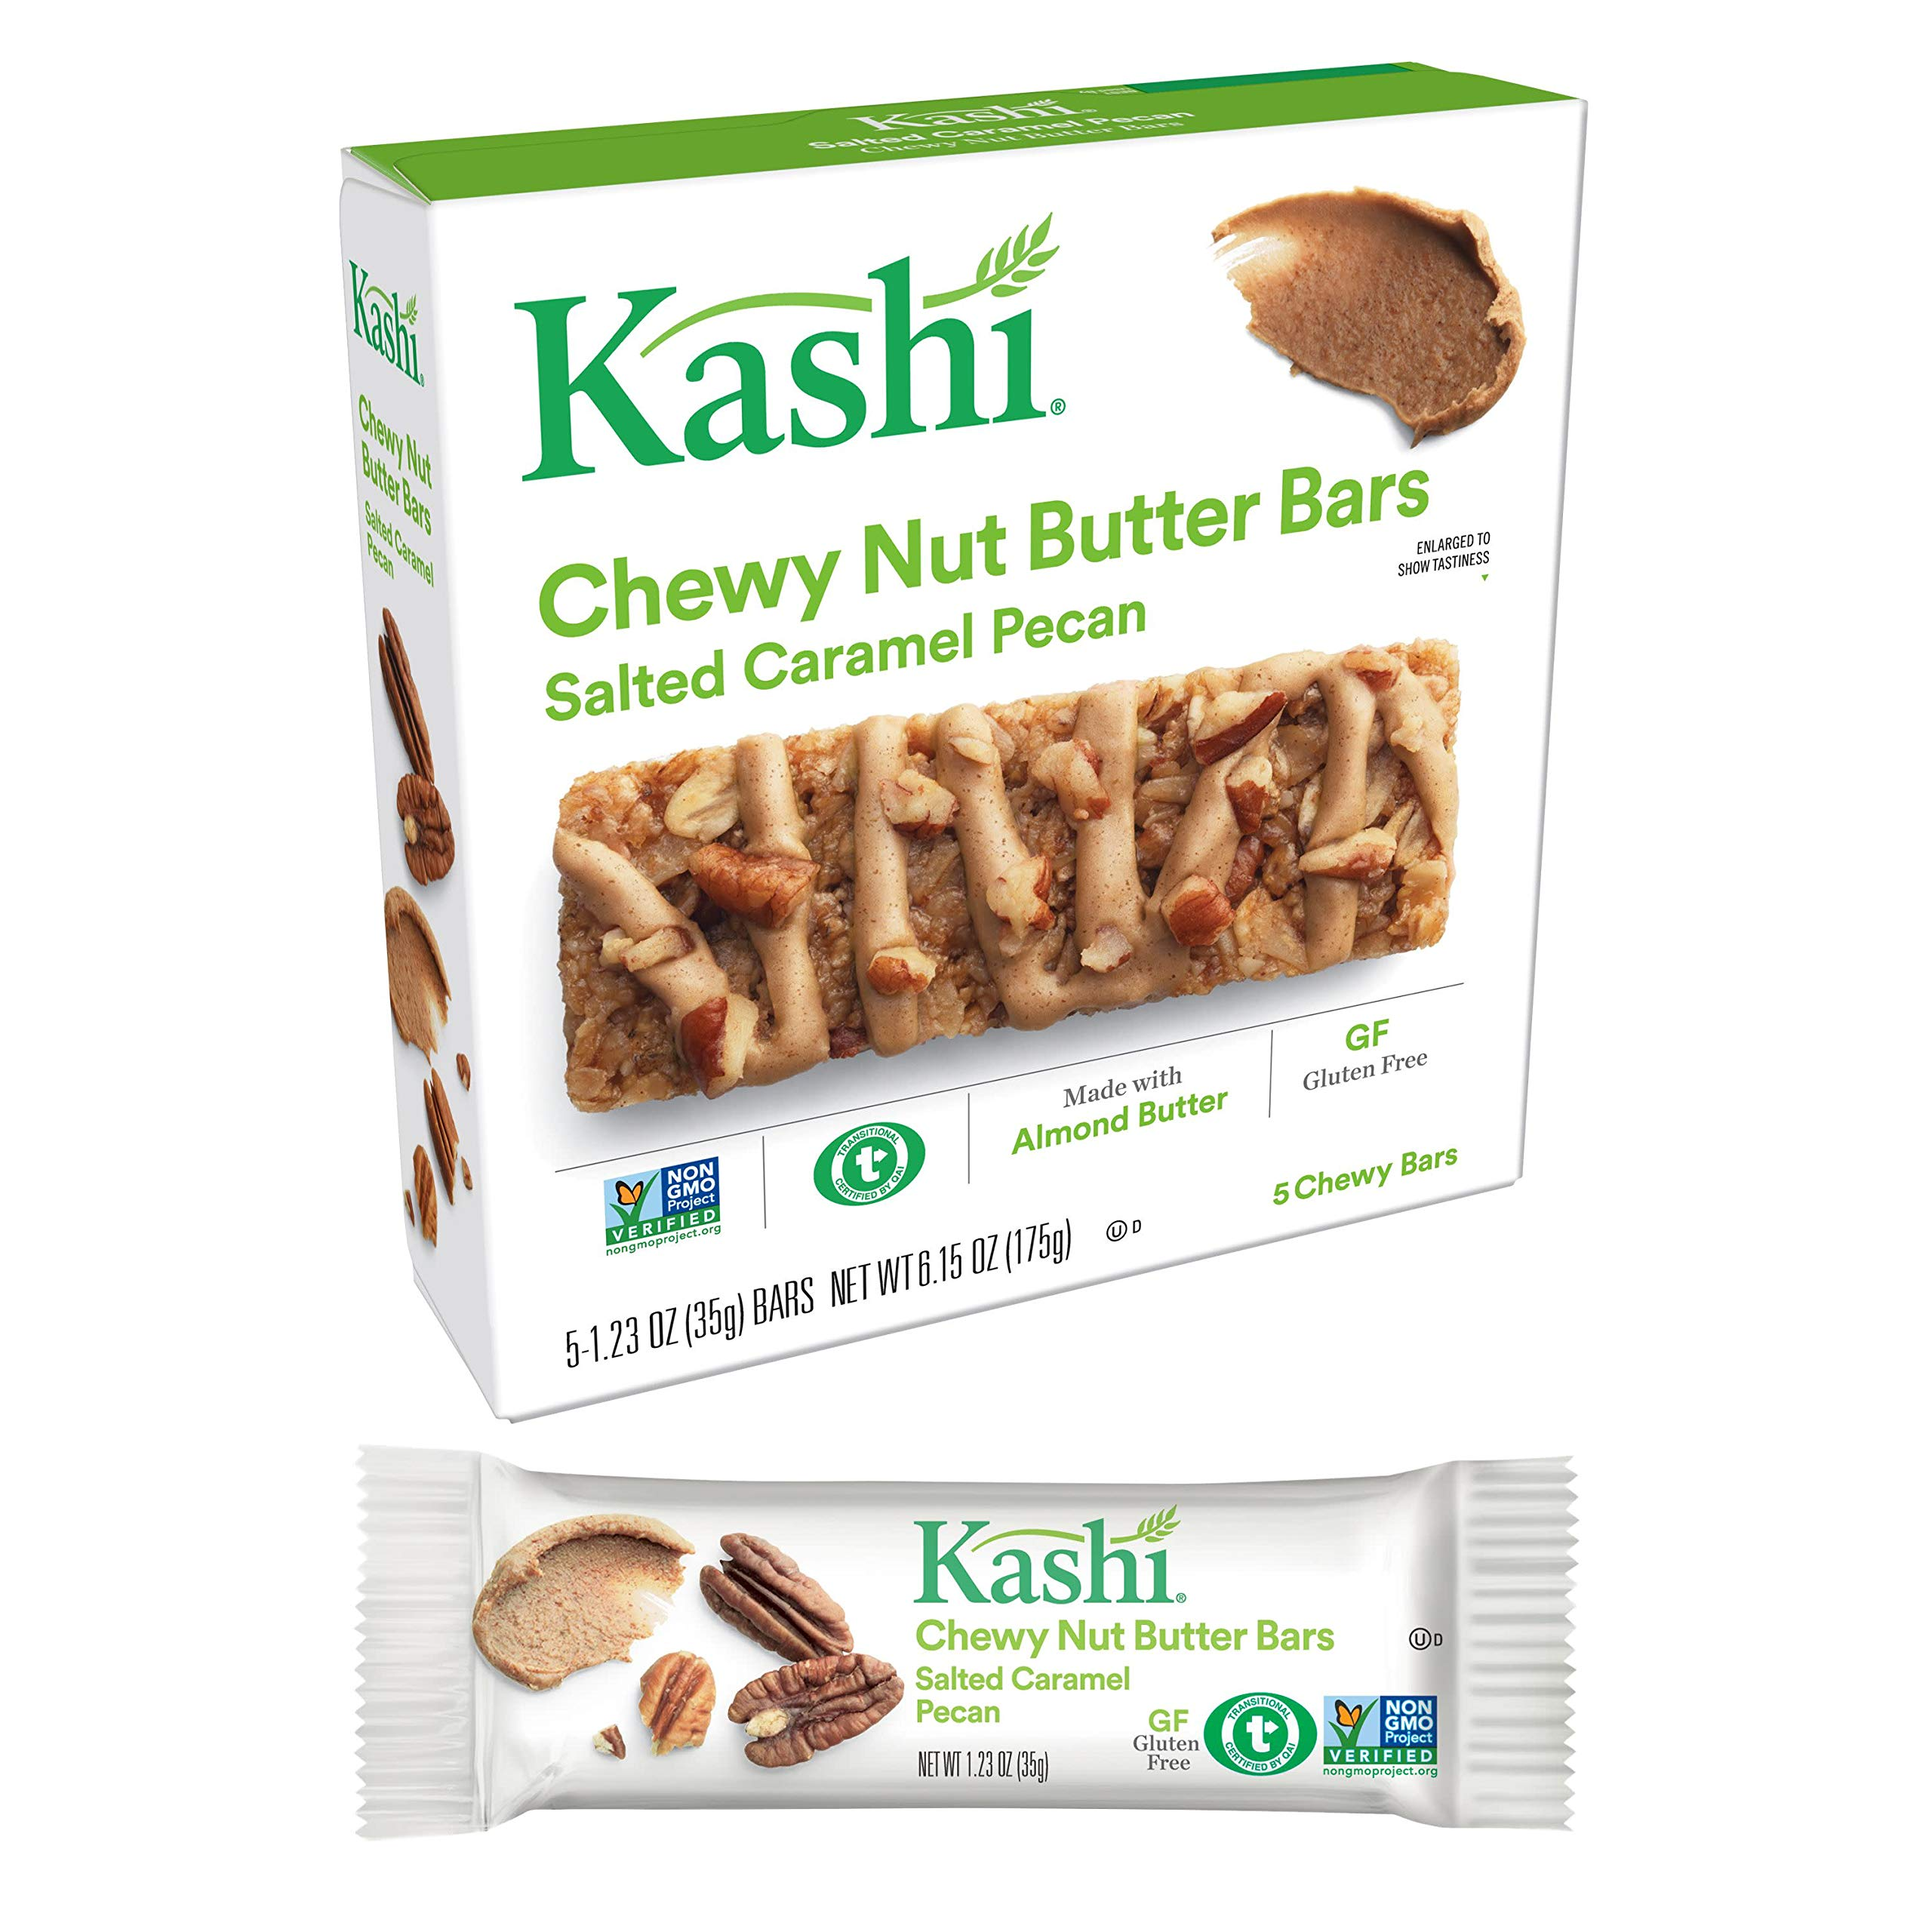 Kashi, Chewy Nut Butter Bars, Salted Caramel Pecan, Gluten Free, Non-GMO Project Verified, 6.15 oz (5 Count)(Pack of 8) by Kashi (Image #3)